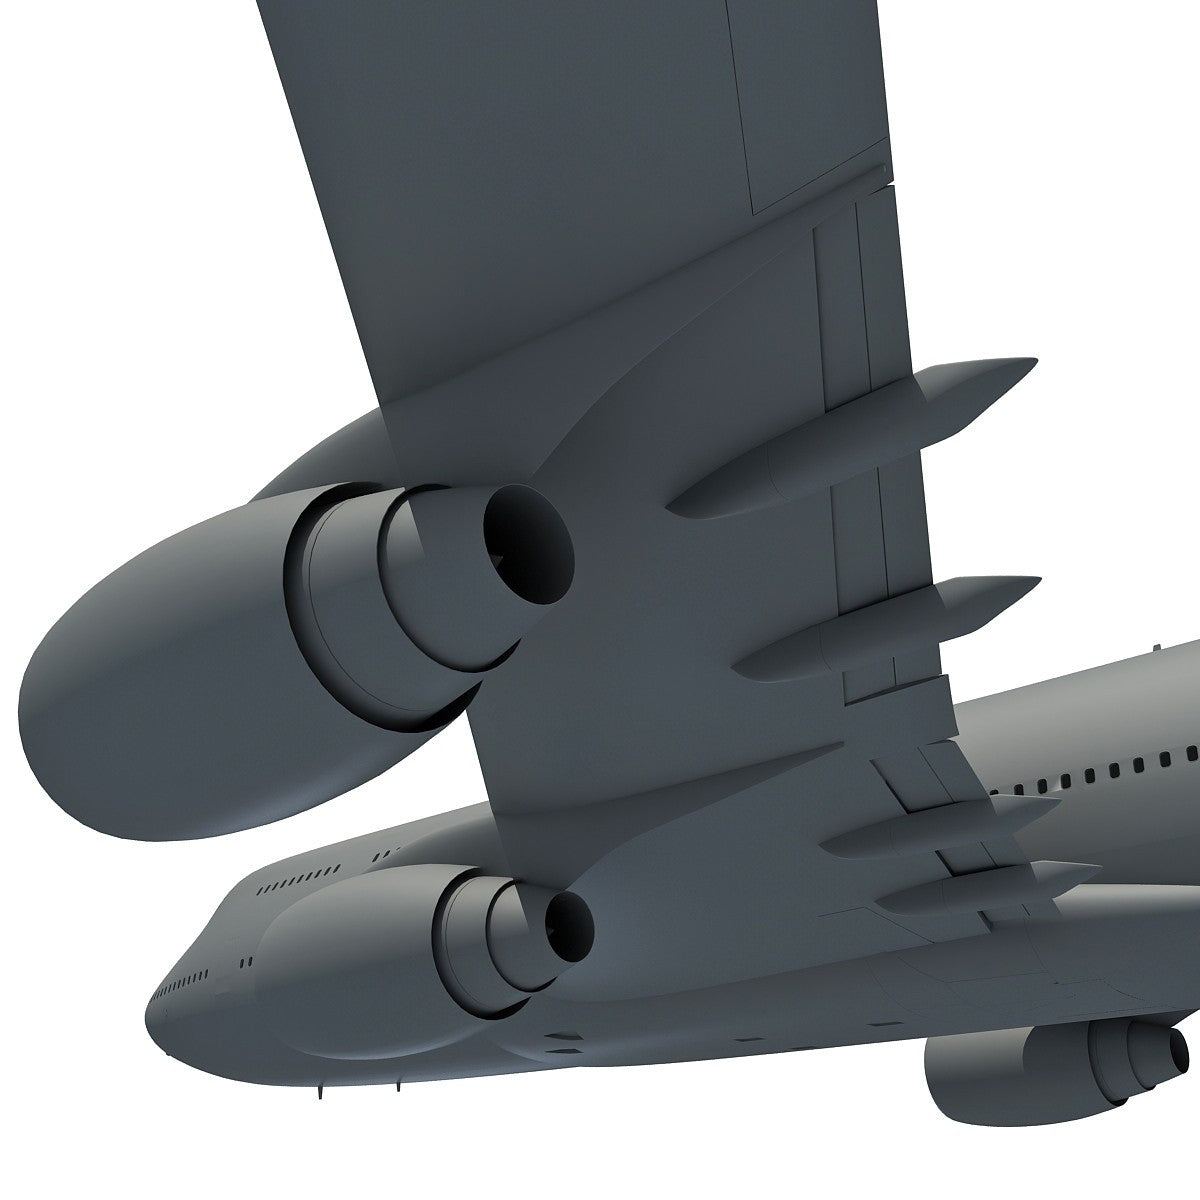 Aircraft Aerial 3D Scene